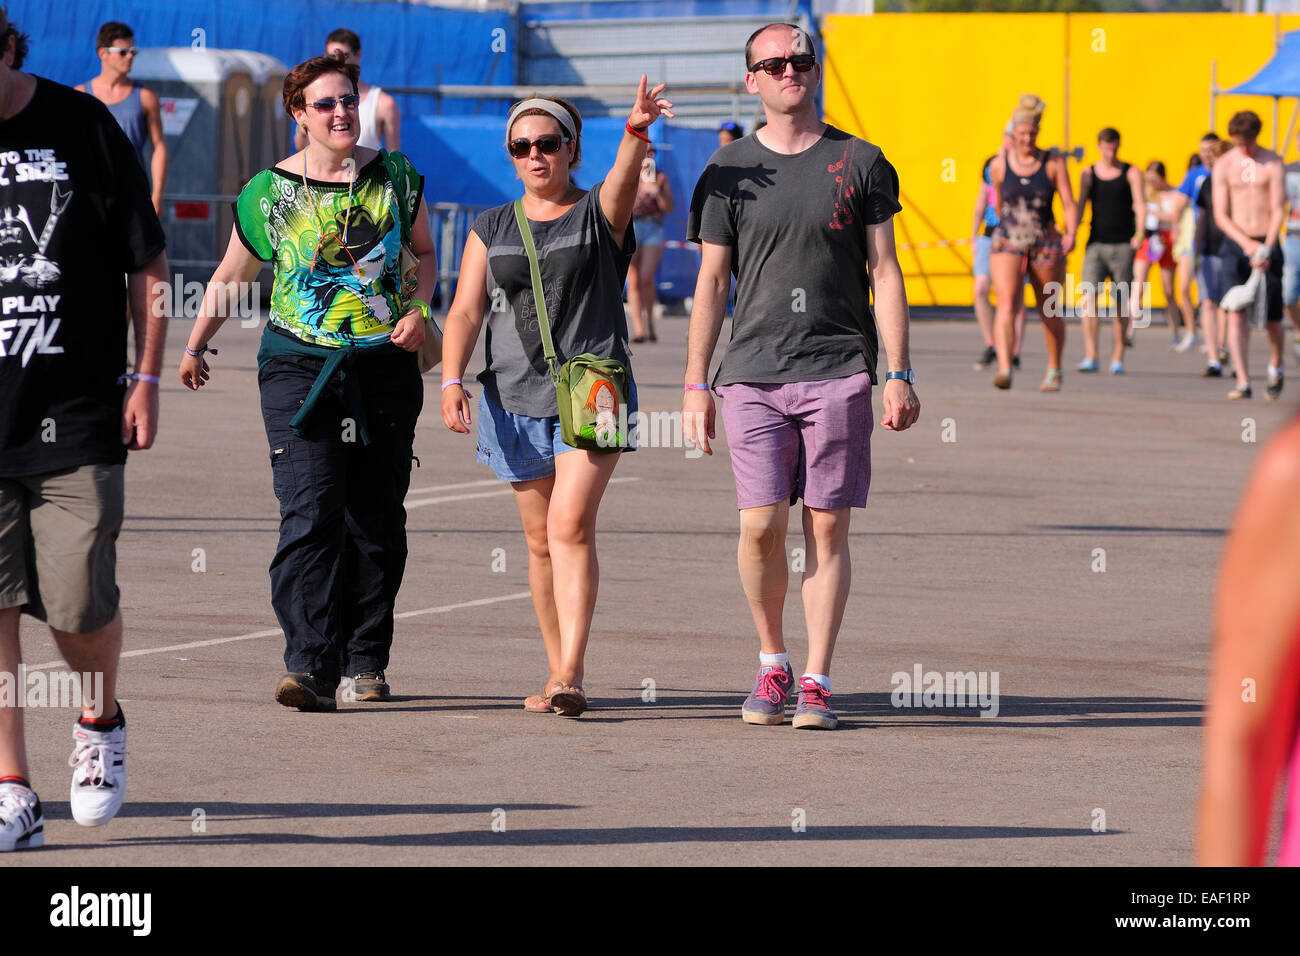 BENICASIM, SPAIN - JULY 19: People at the entrance after buying their tickets at FIB Festival. - Stock Image